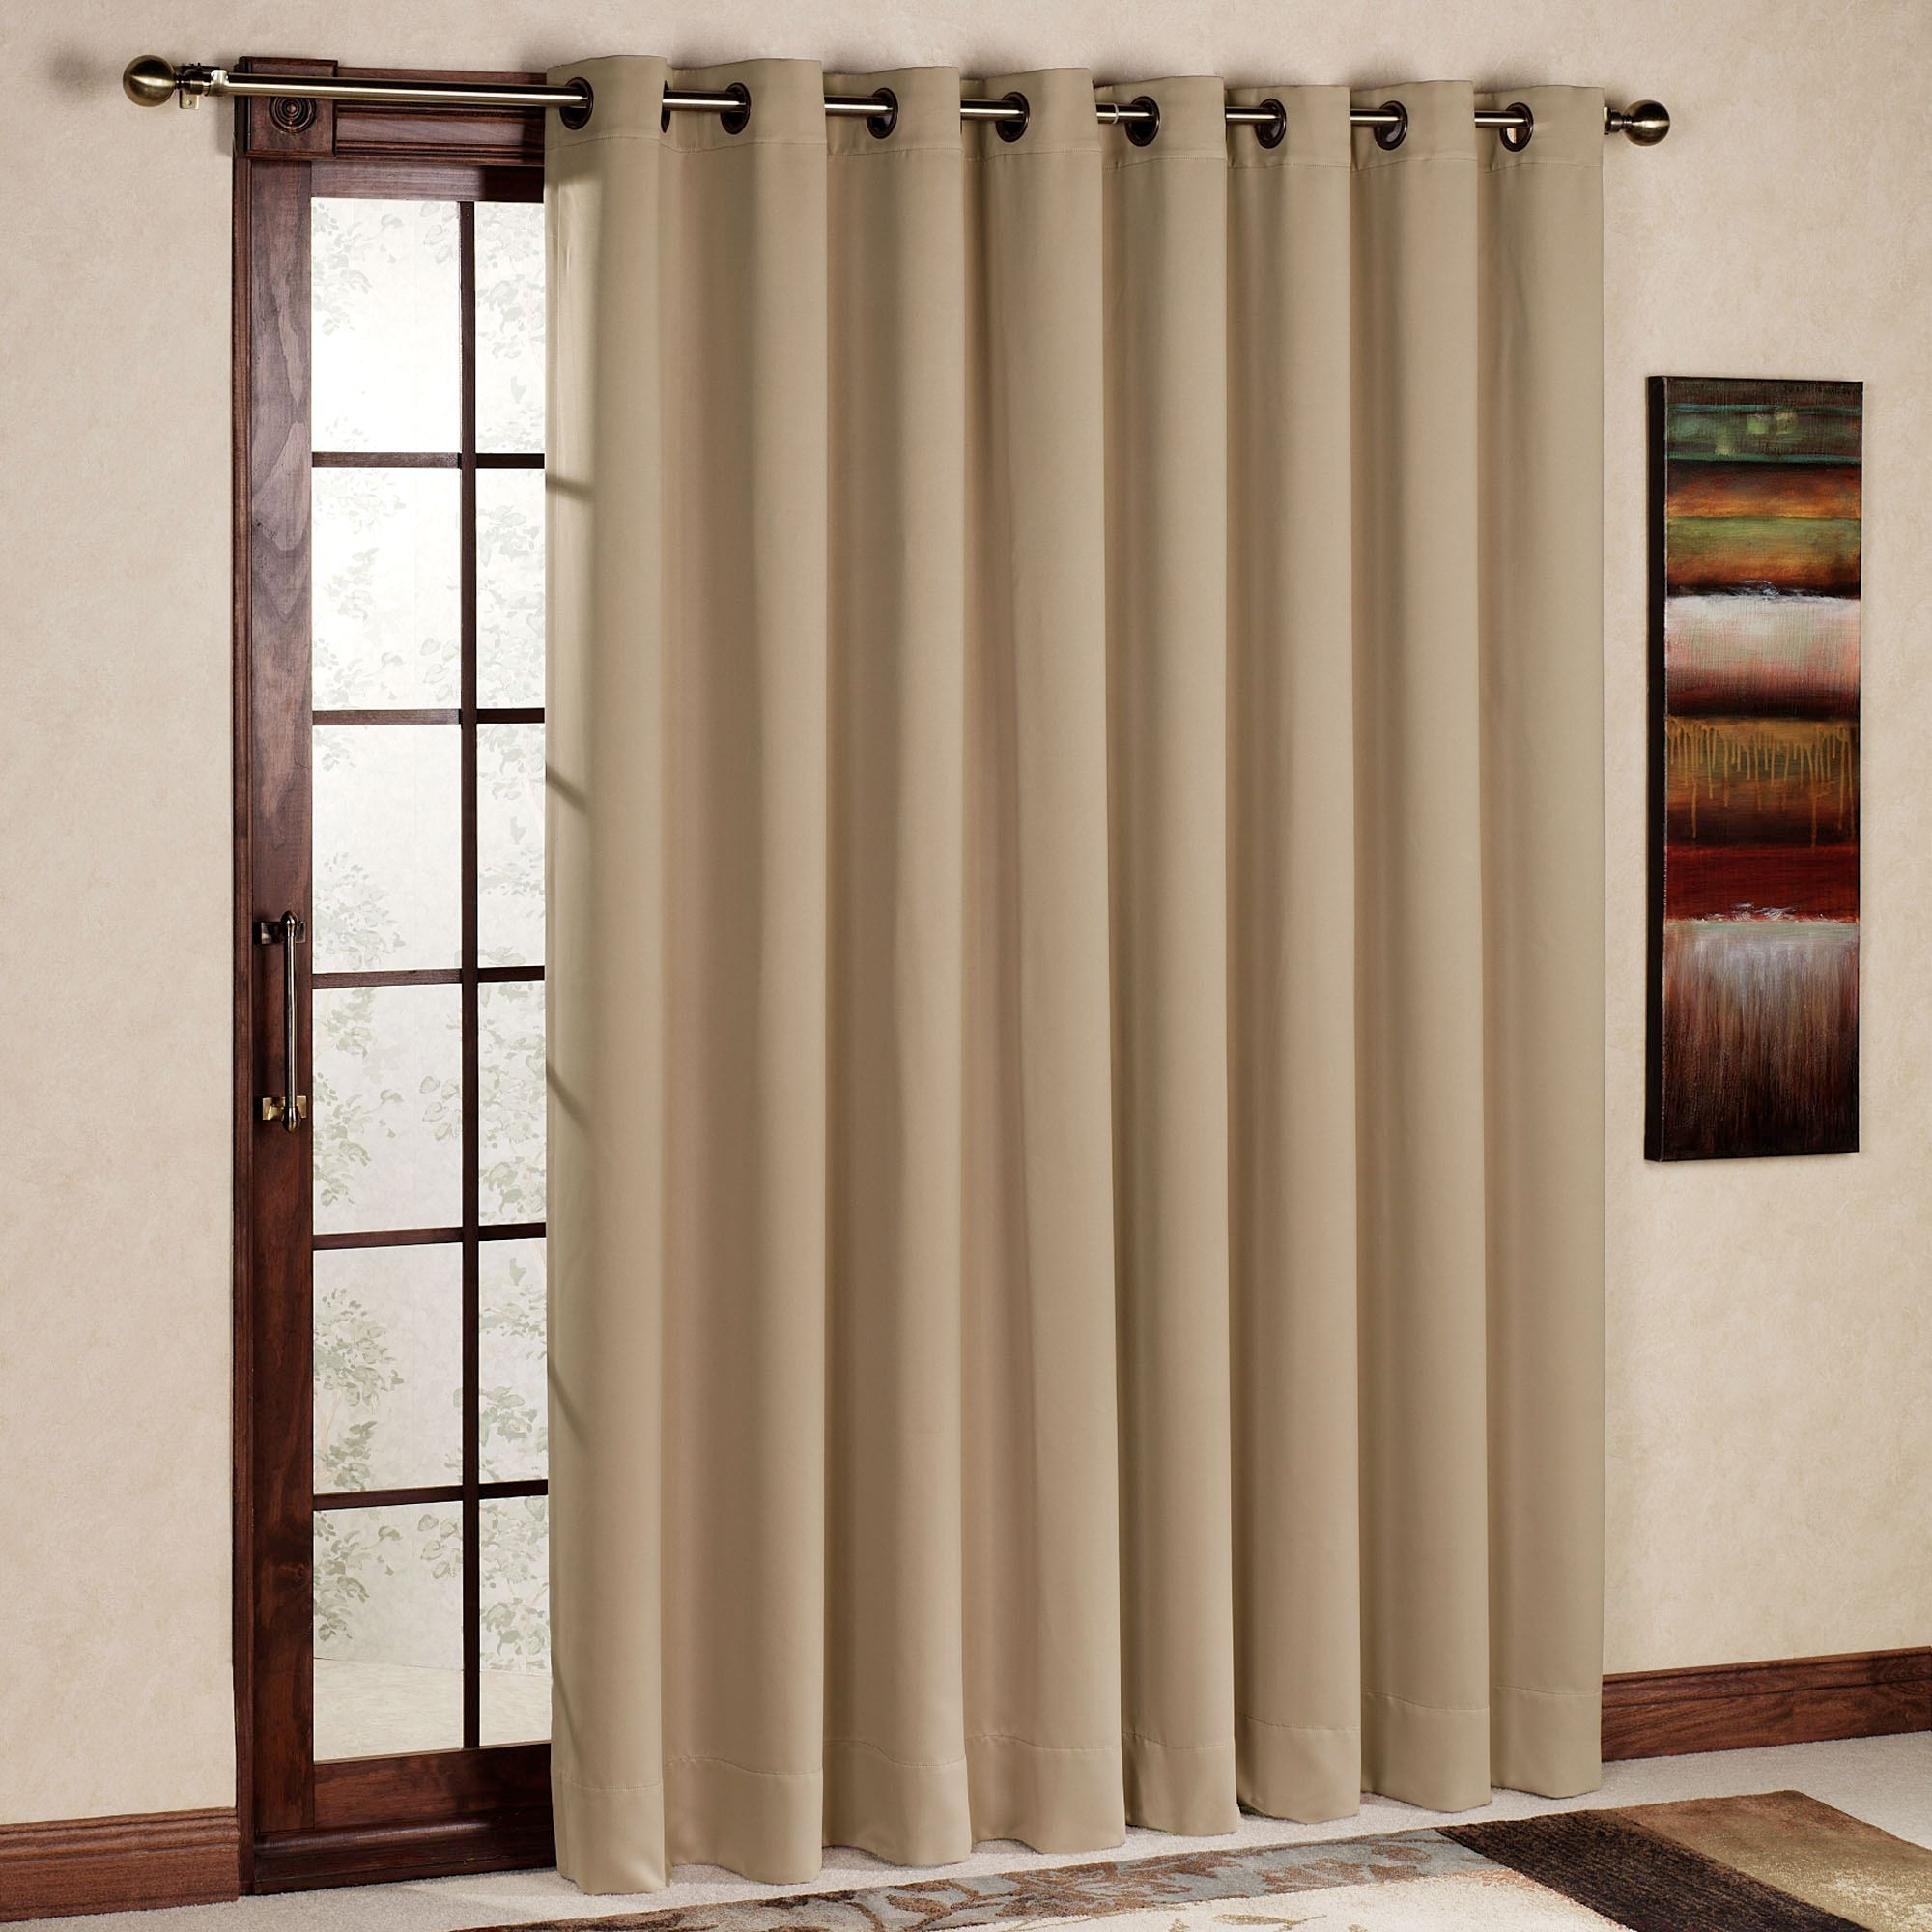 White Blackout Curtains For Sliding Glass DoorsWhite Blackout Curtains For Sliding Glass Doors